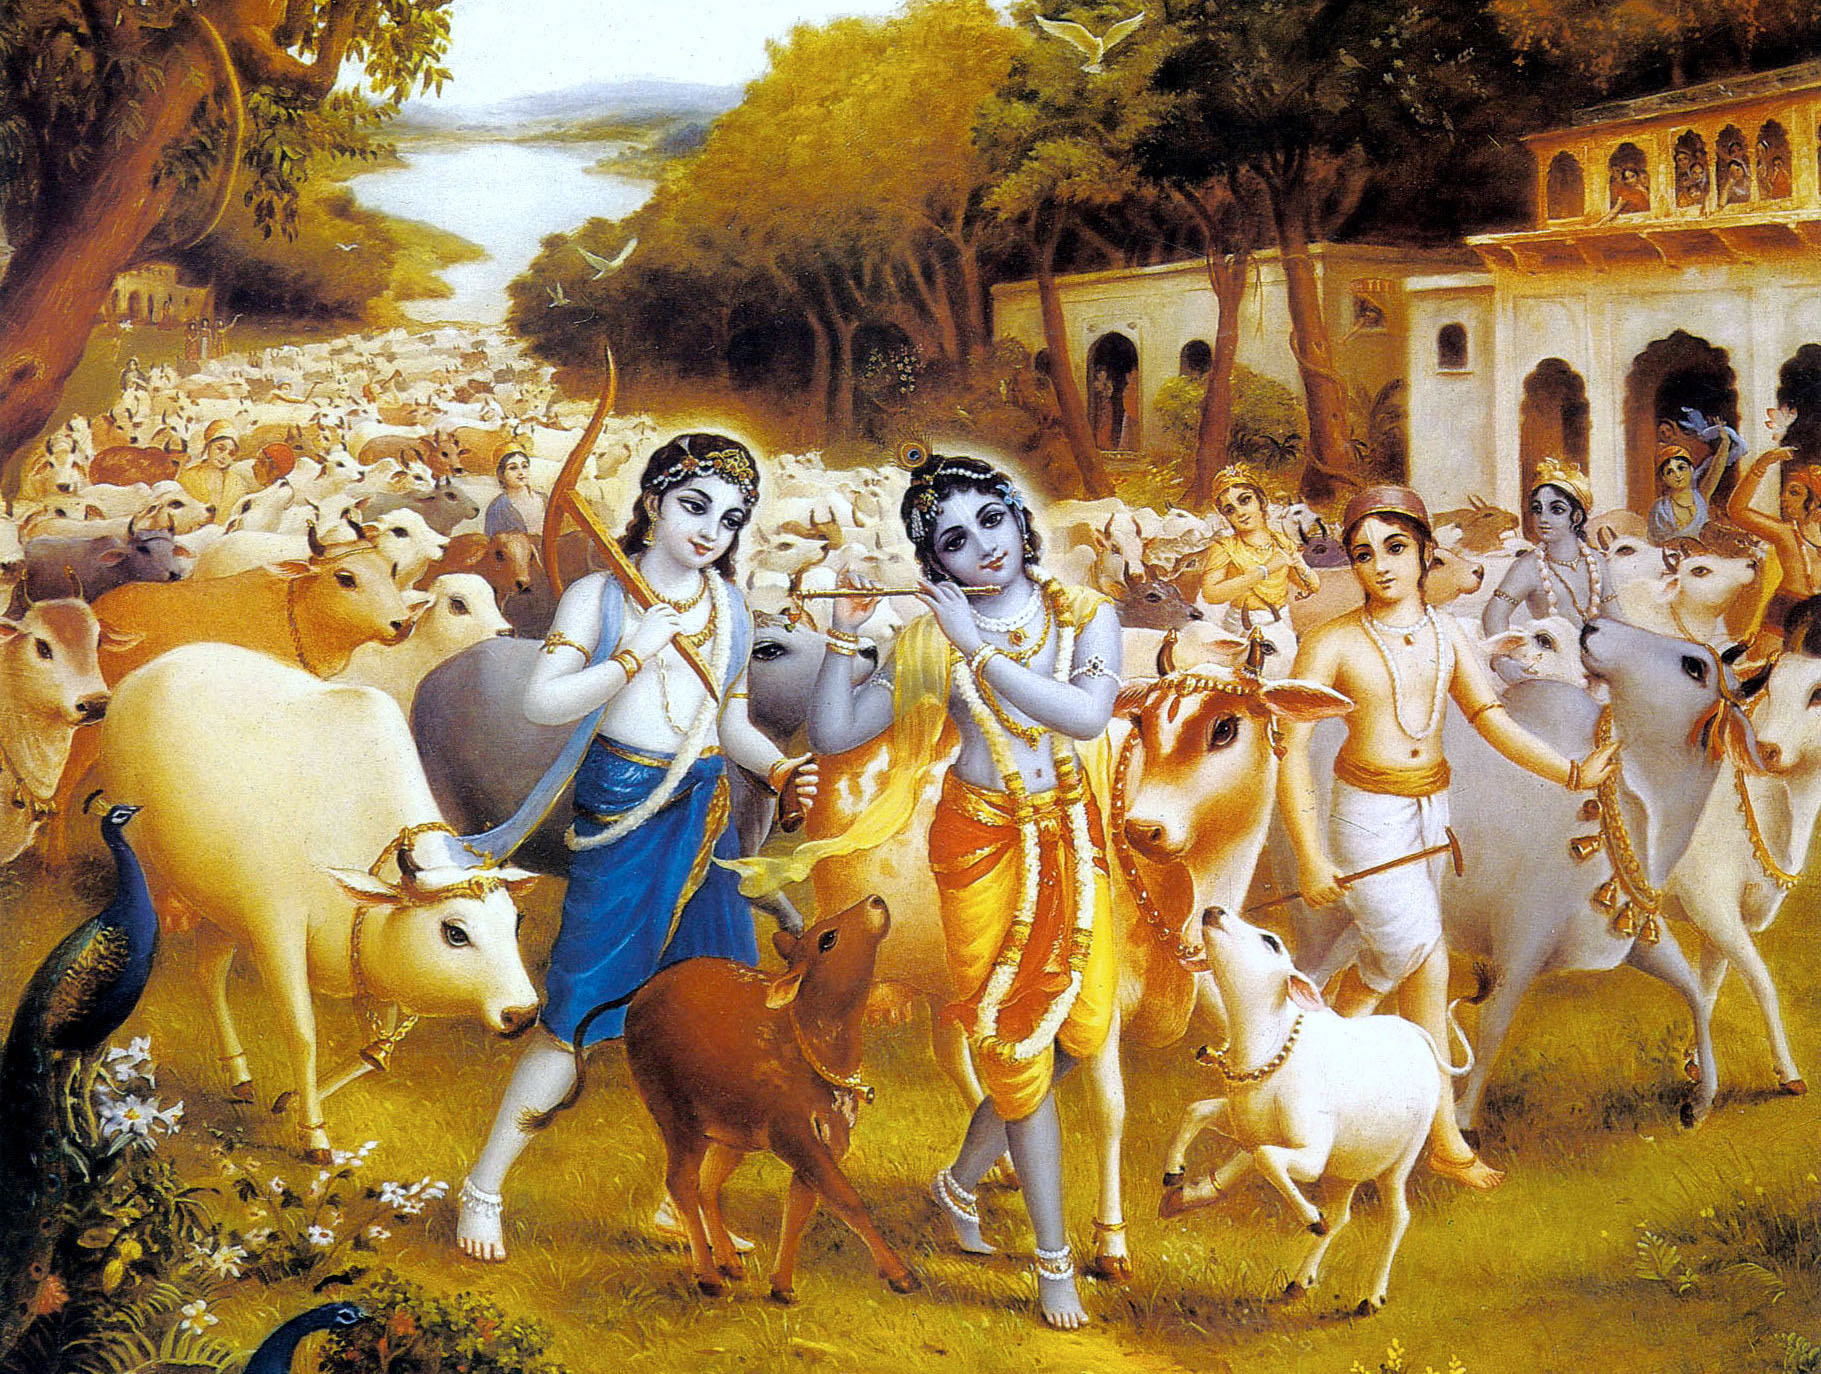 https://i2.wp.com/www.vcm.org.in/blog/wp-content/uploads/2017/10/Krishna-and-Balarama-play-as-cow-herds-boys-in-Vrindavan-and-enjoy-loving-pastimes-with-their-devotees-1.jpg